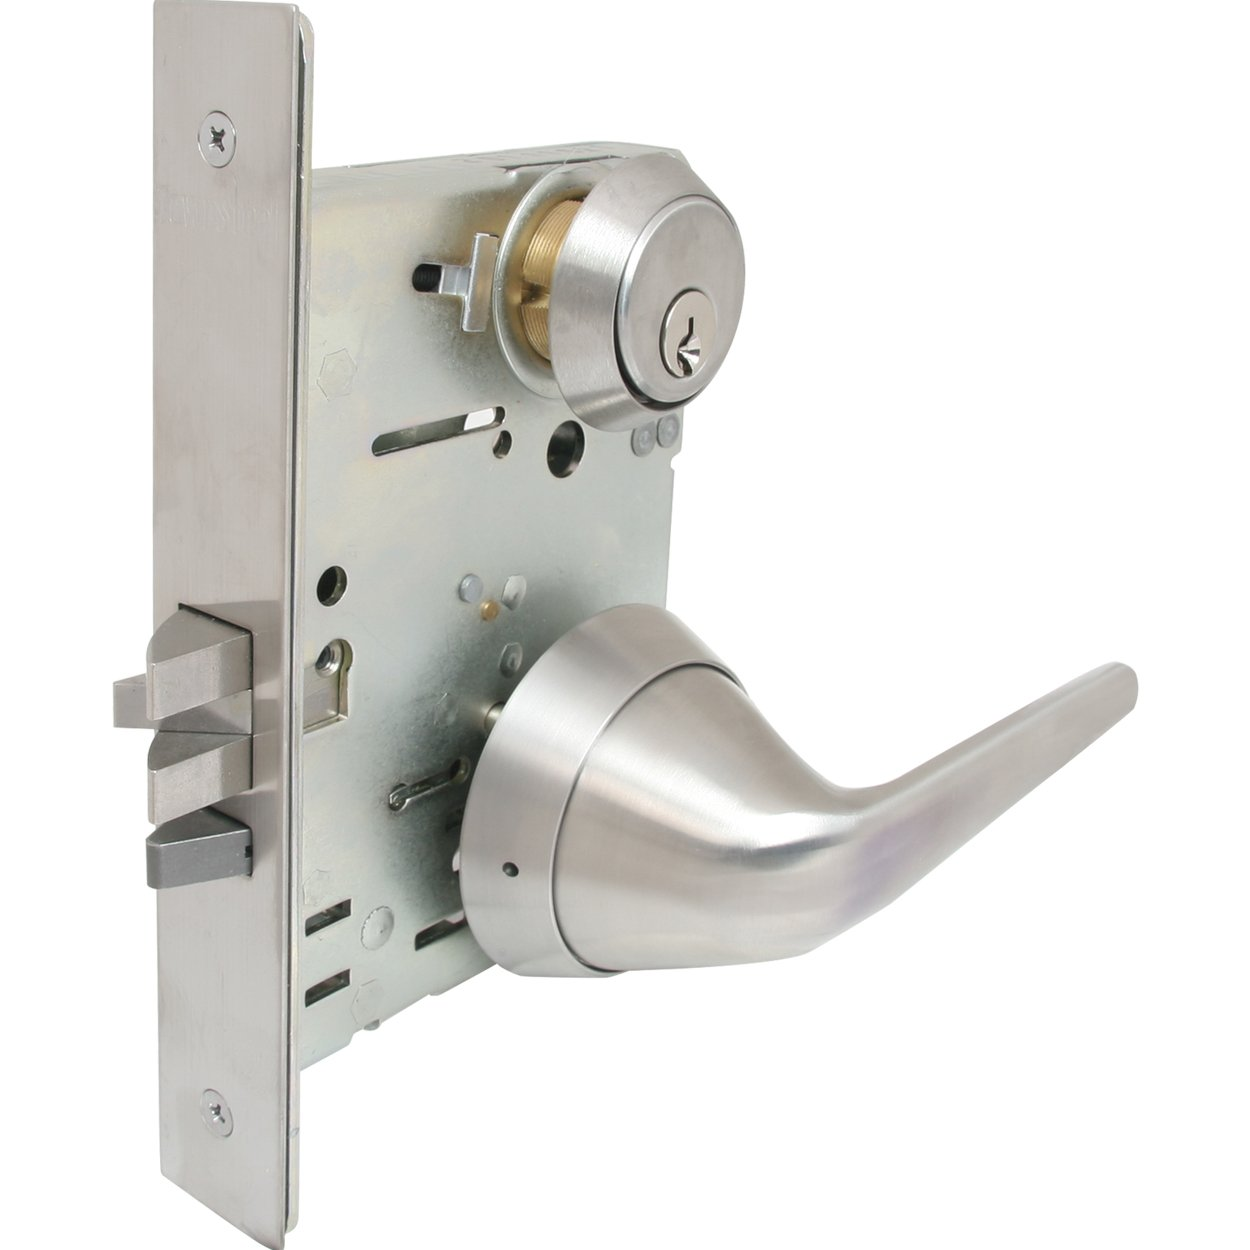 TownSteel MRX-S-L-07-32D Mortise Lock with Ligature Resistant Lever Trim, Grade 1, Storeroom Function, Satin Stainless Steel